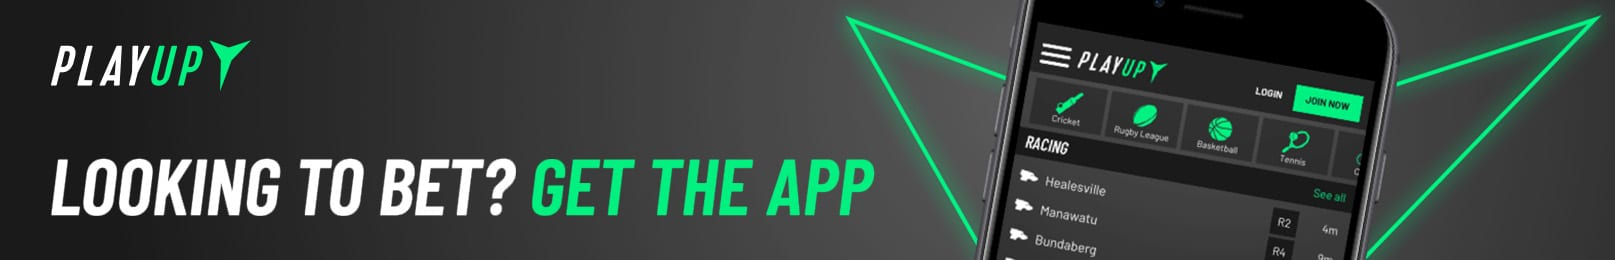 Play Up Betting App